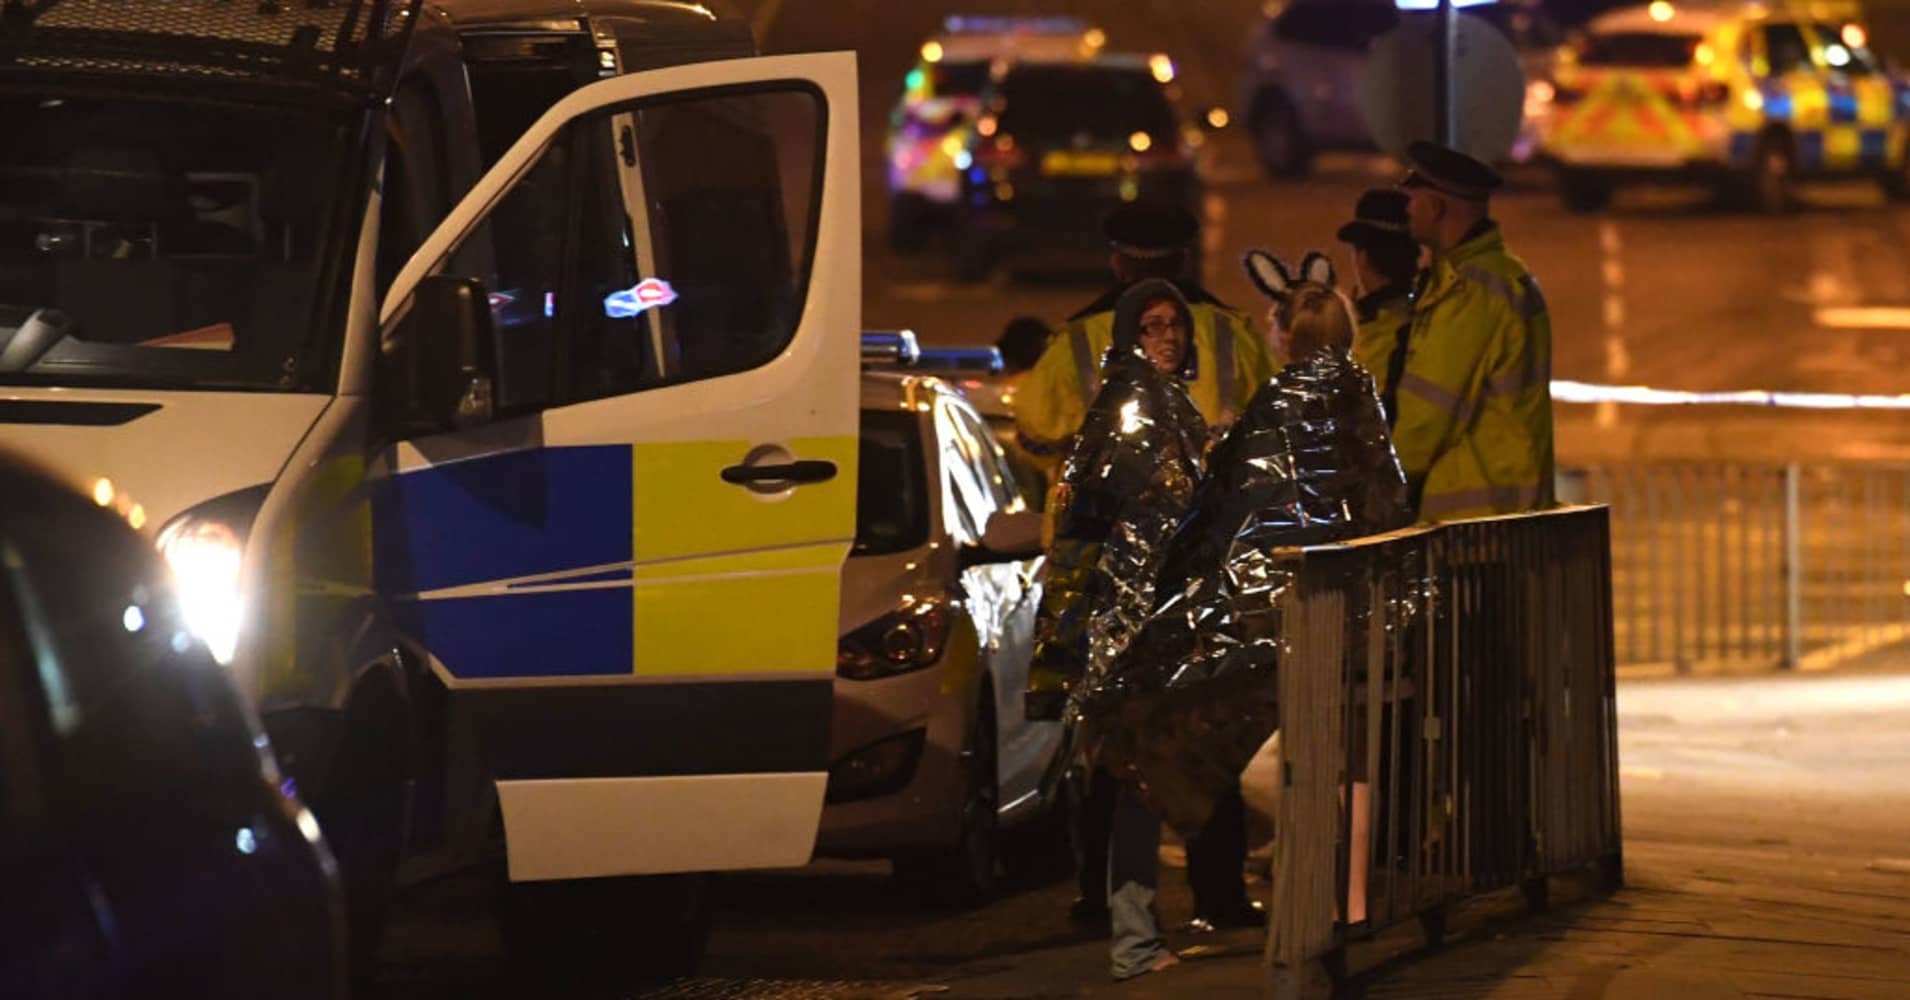 In pictures: Suspected terror attack at Ariana Grande concert in Manchester